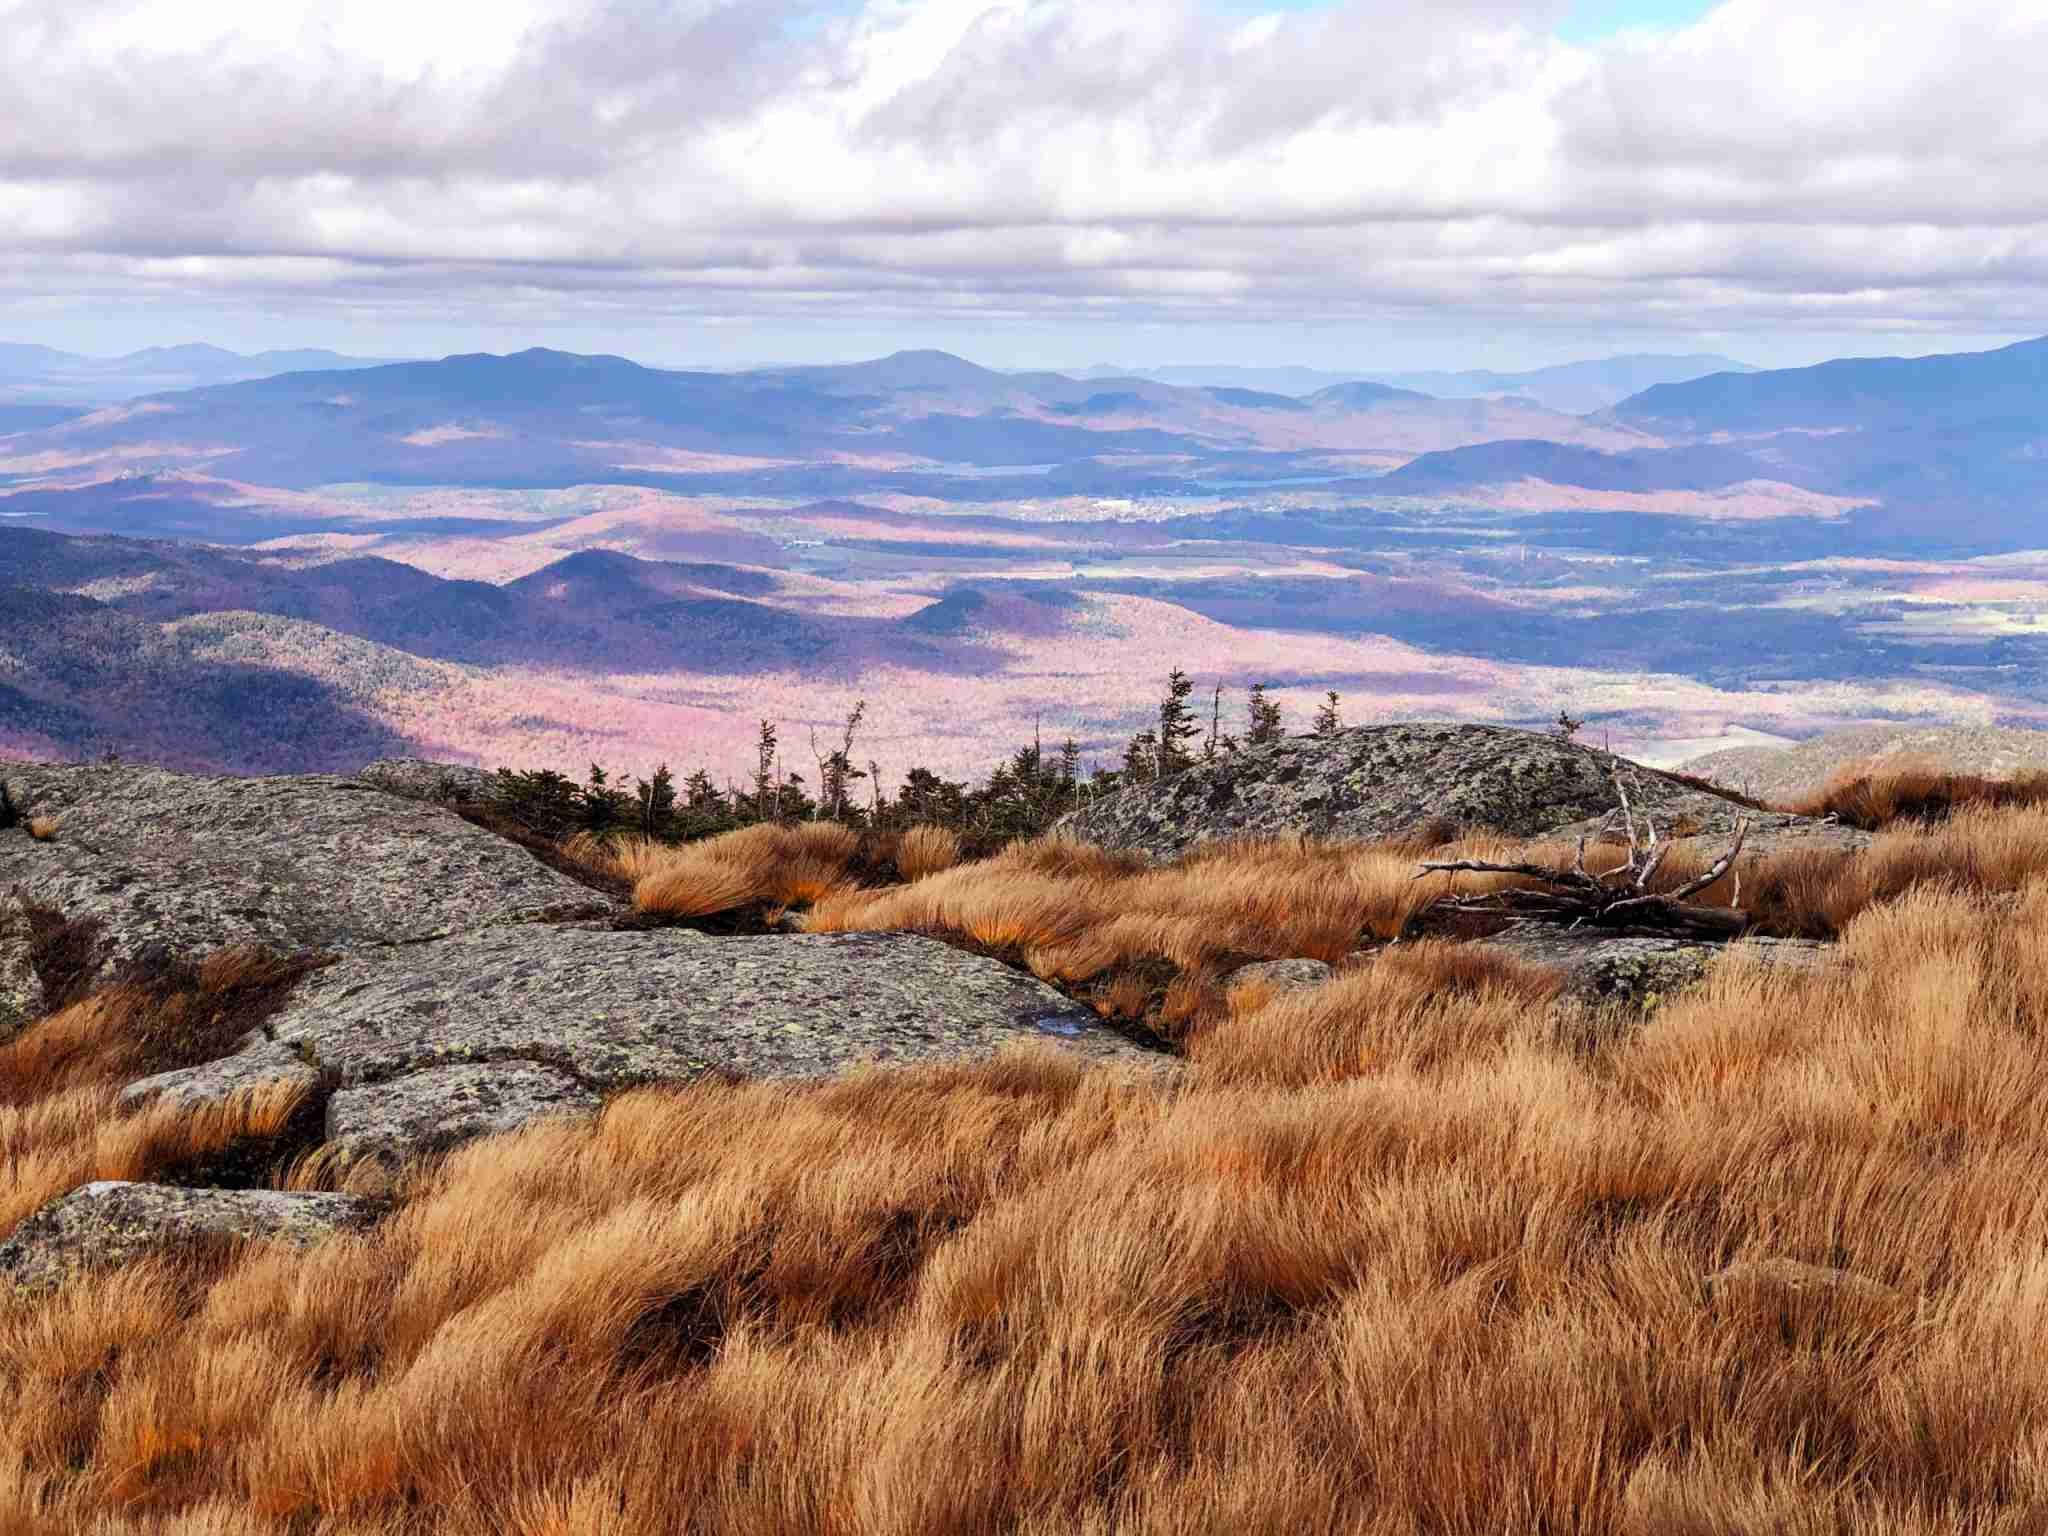 Hiking in the high peaks of the Adirondacks is incredibly rewarding, but if you don